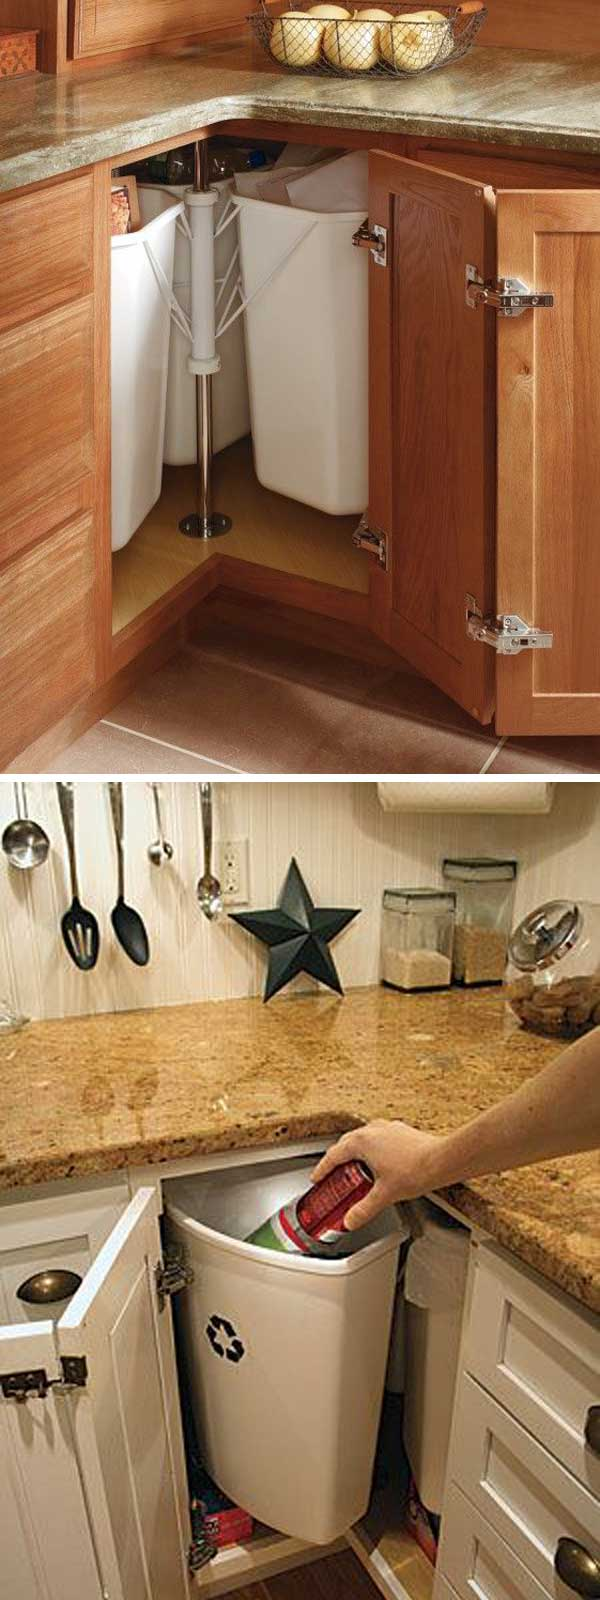 fabulous hacks to utilize the space of corner kitchen cabinets - amazing diy, interior & home design